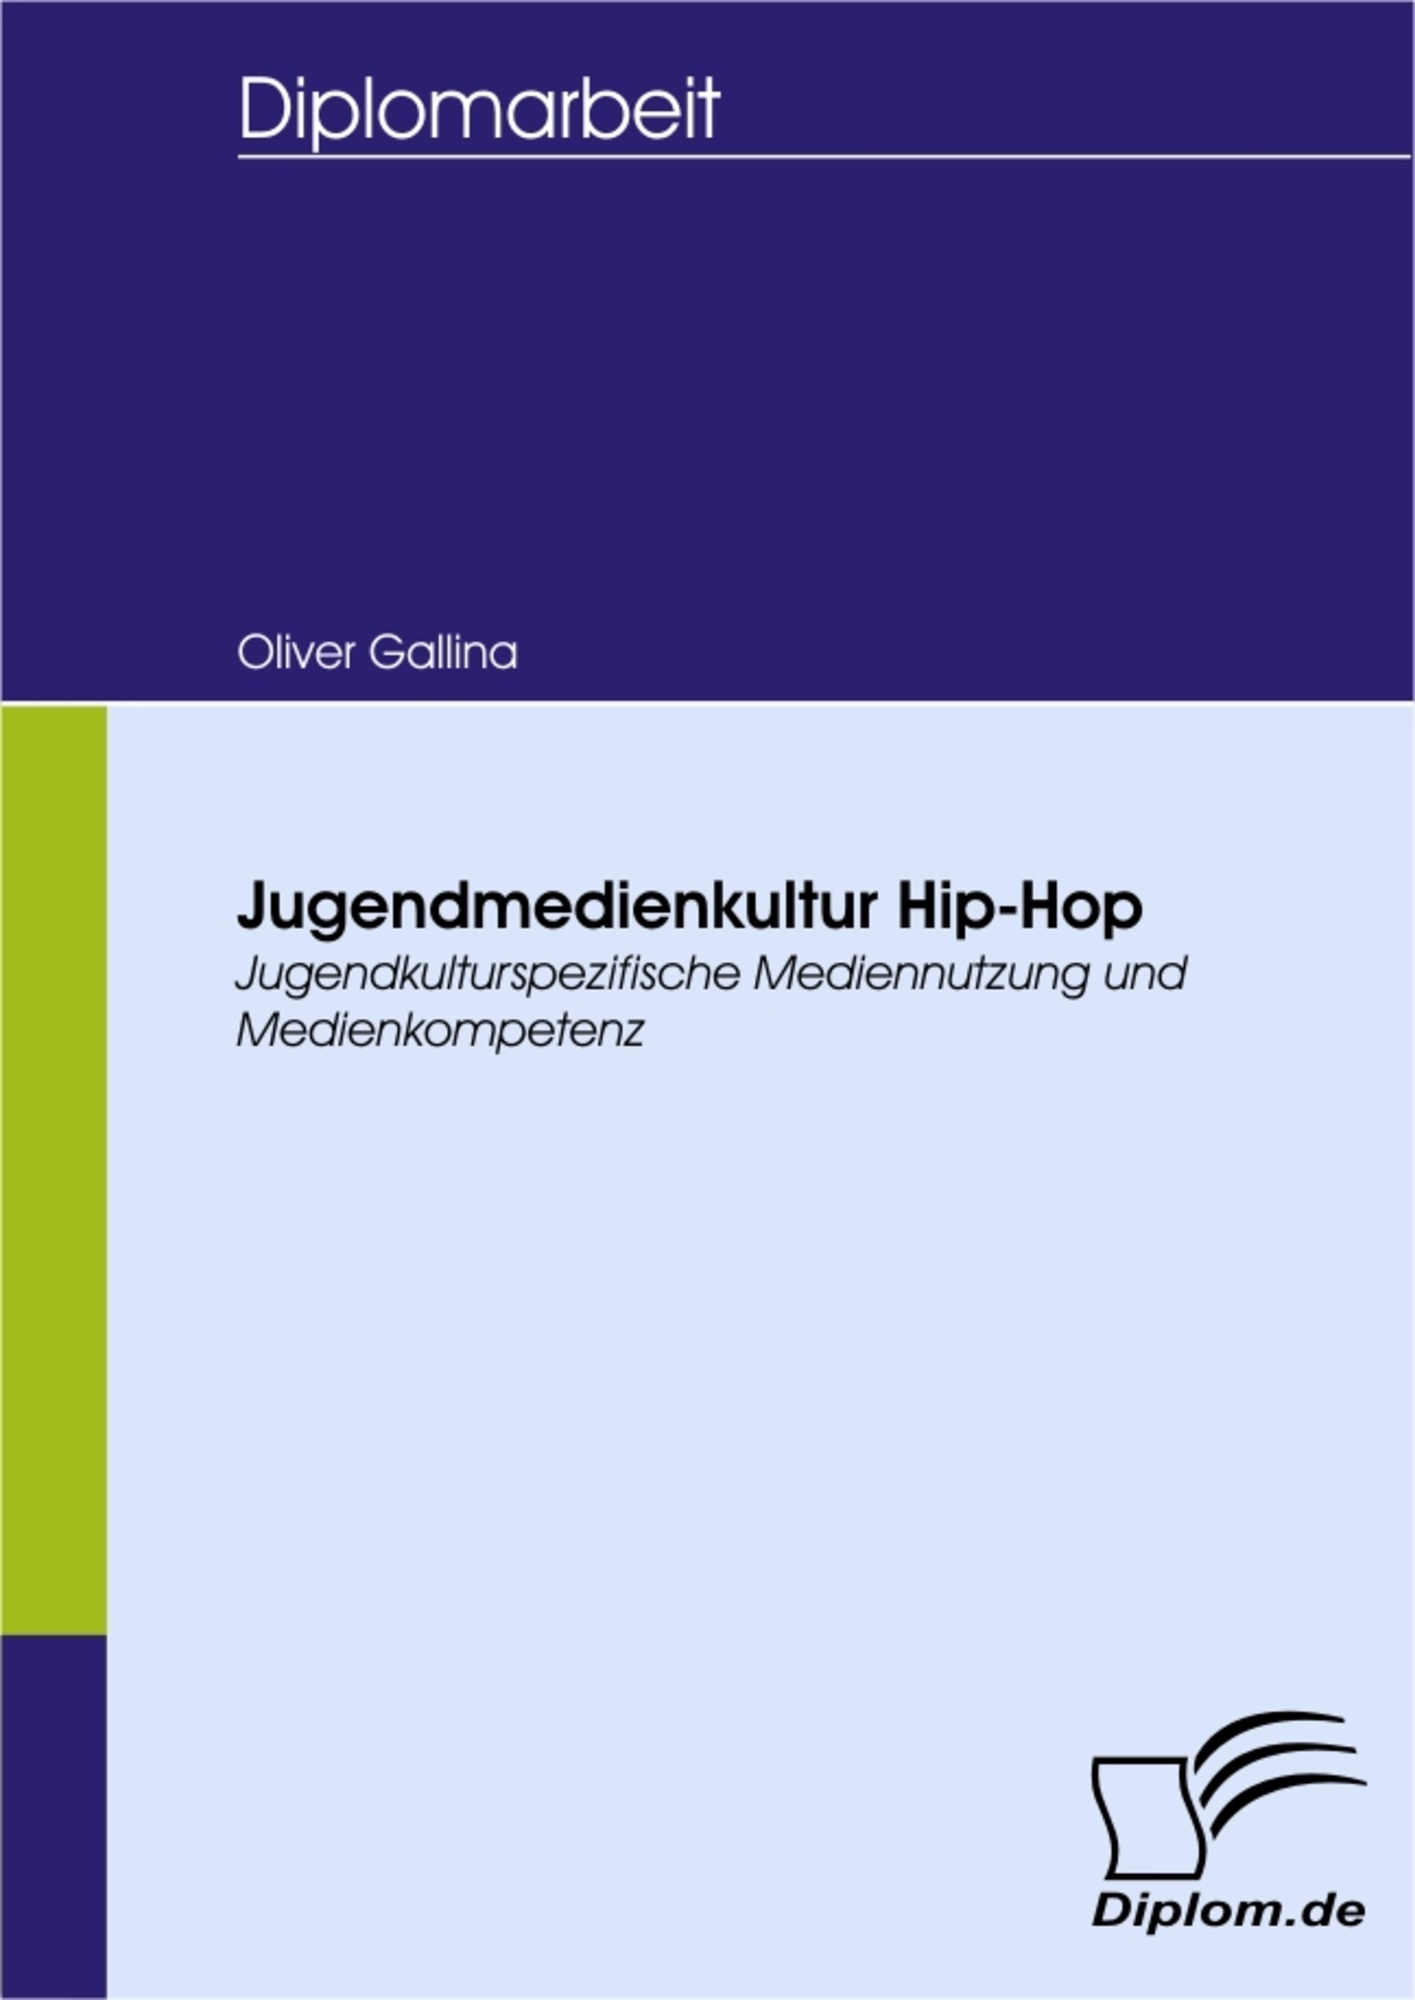 Jugendmedienkultur Hip-Hop